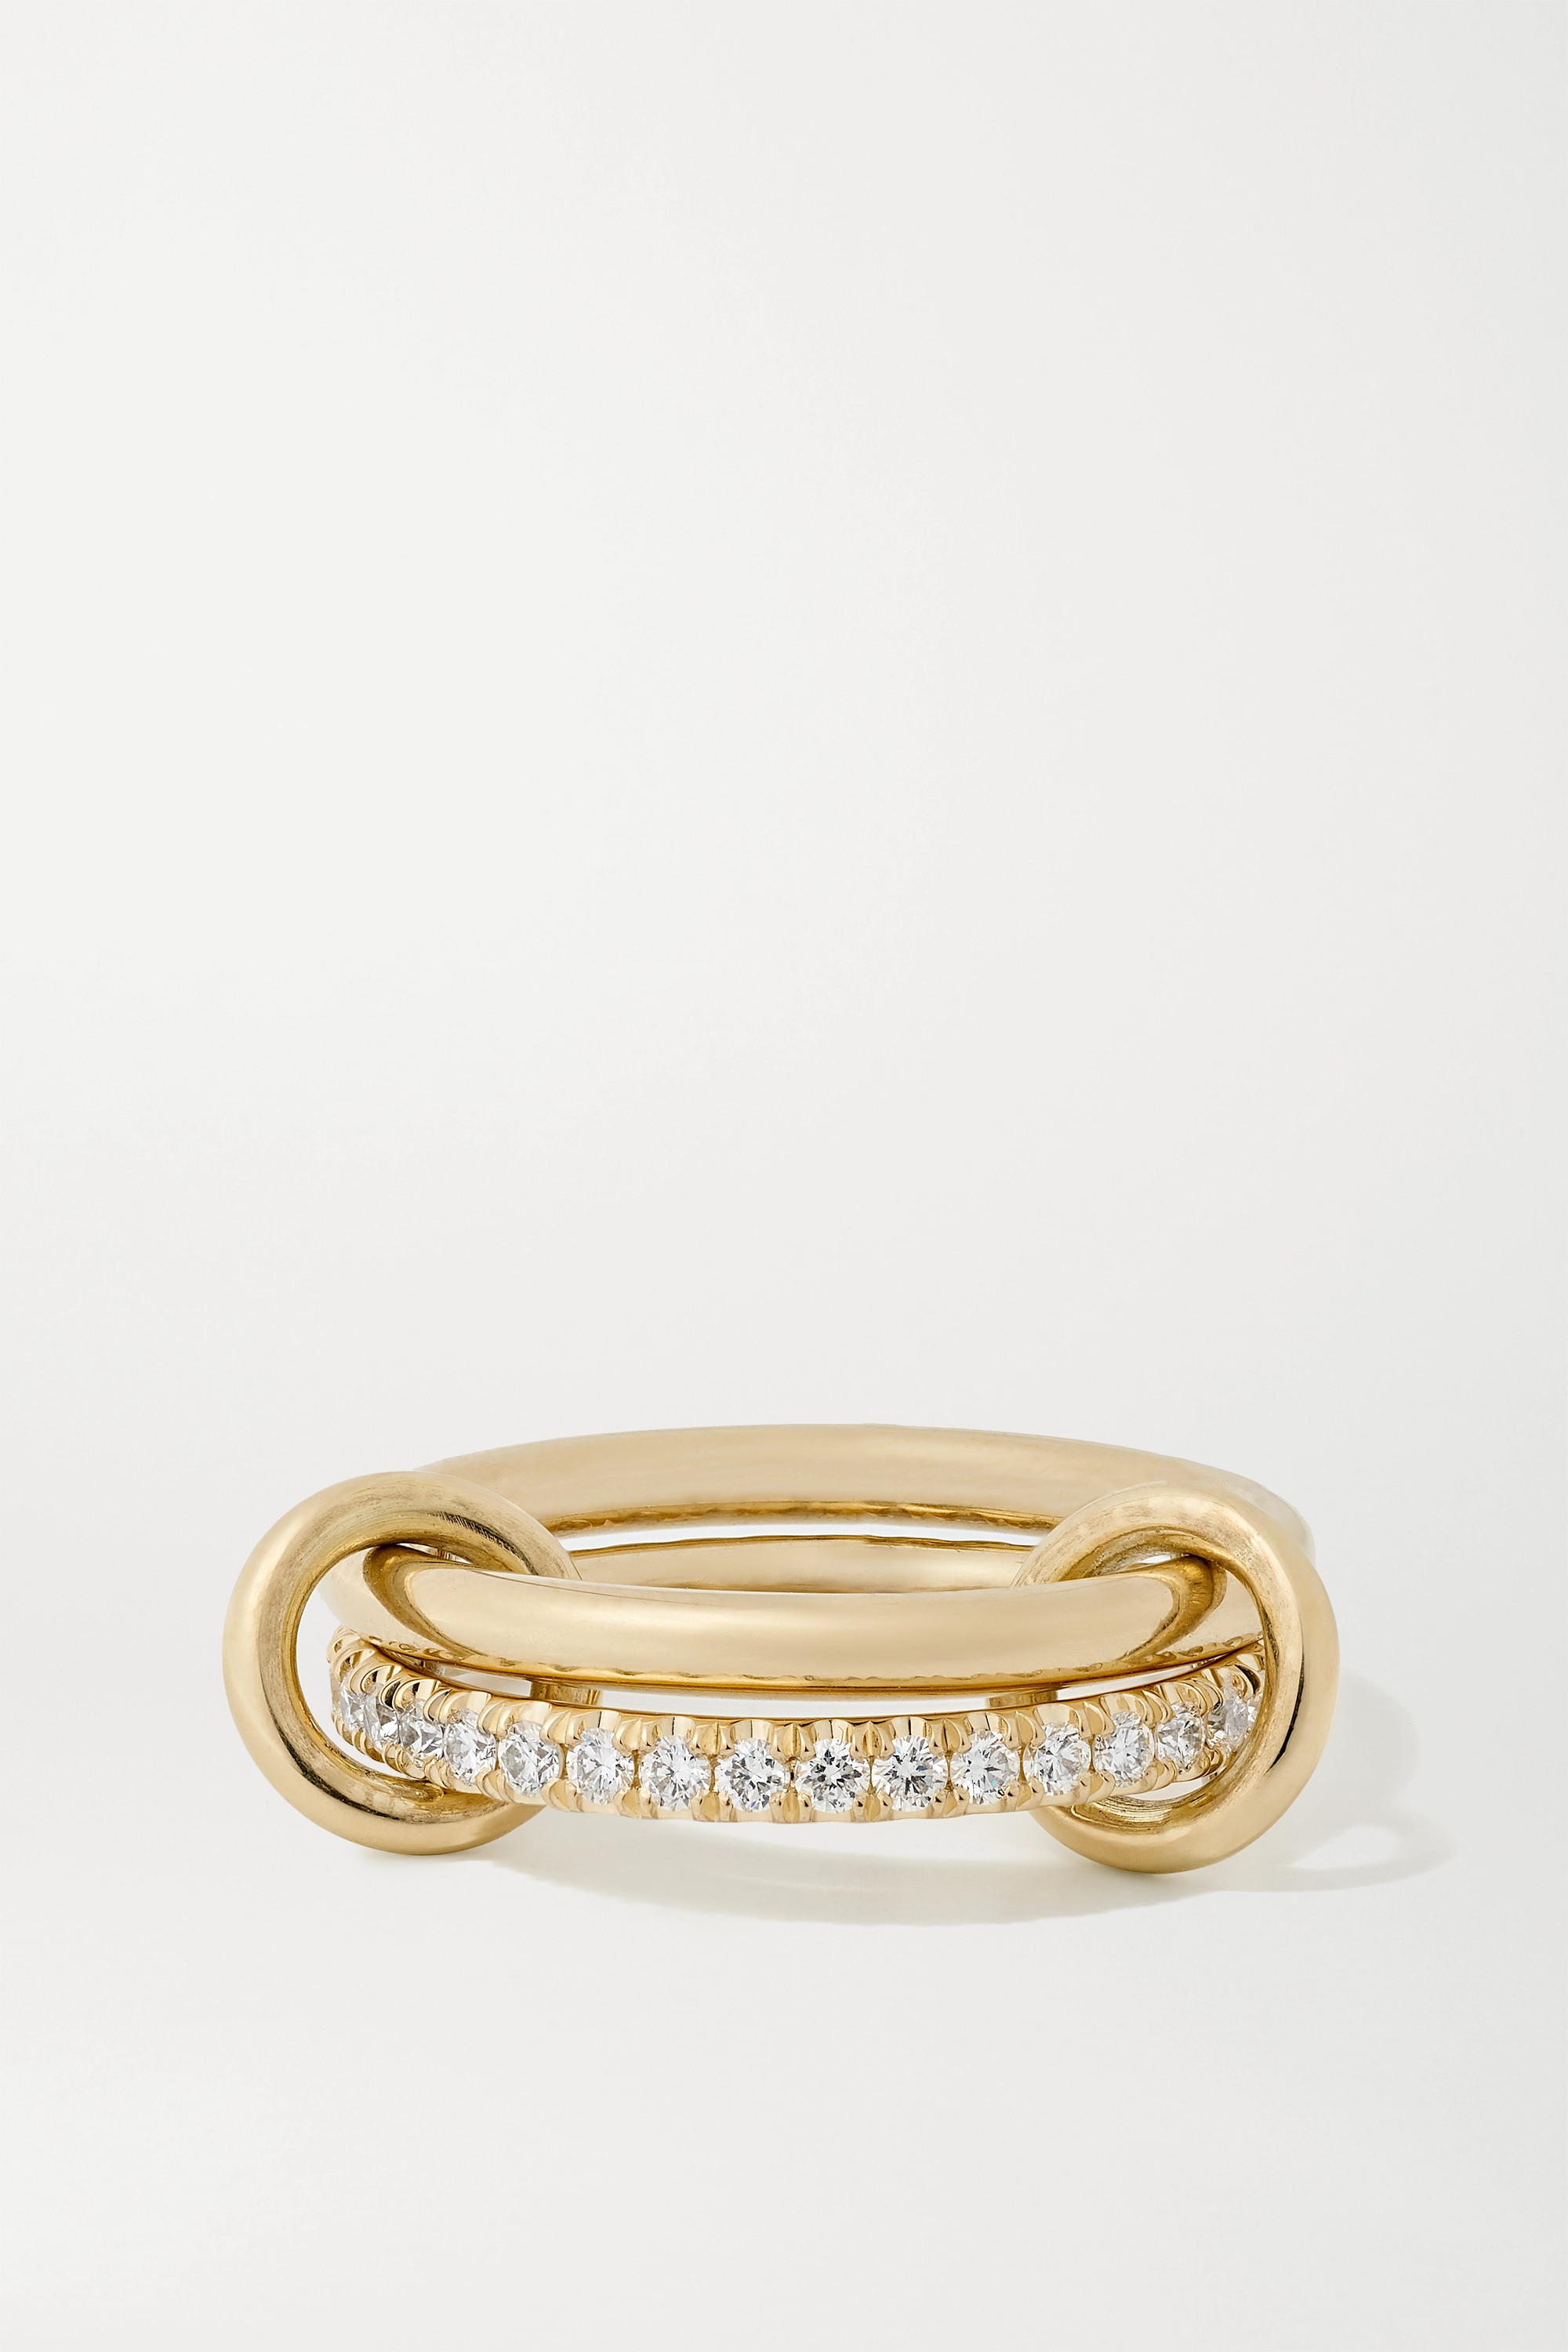 Spinelli Kilcollin - Ceres Deux set of two 18-karat gold and diamond rings